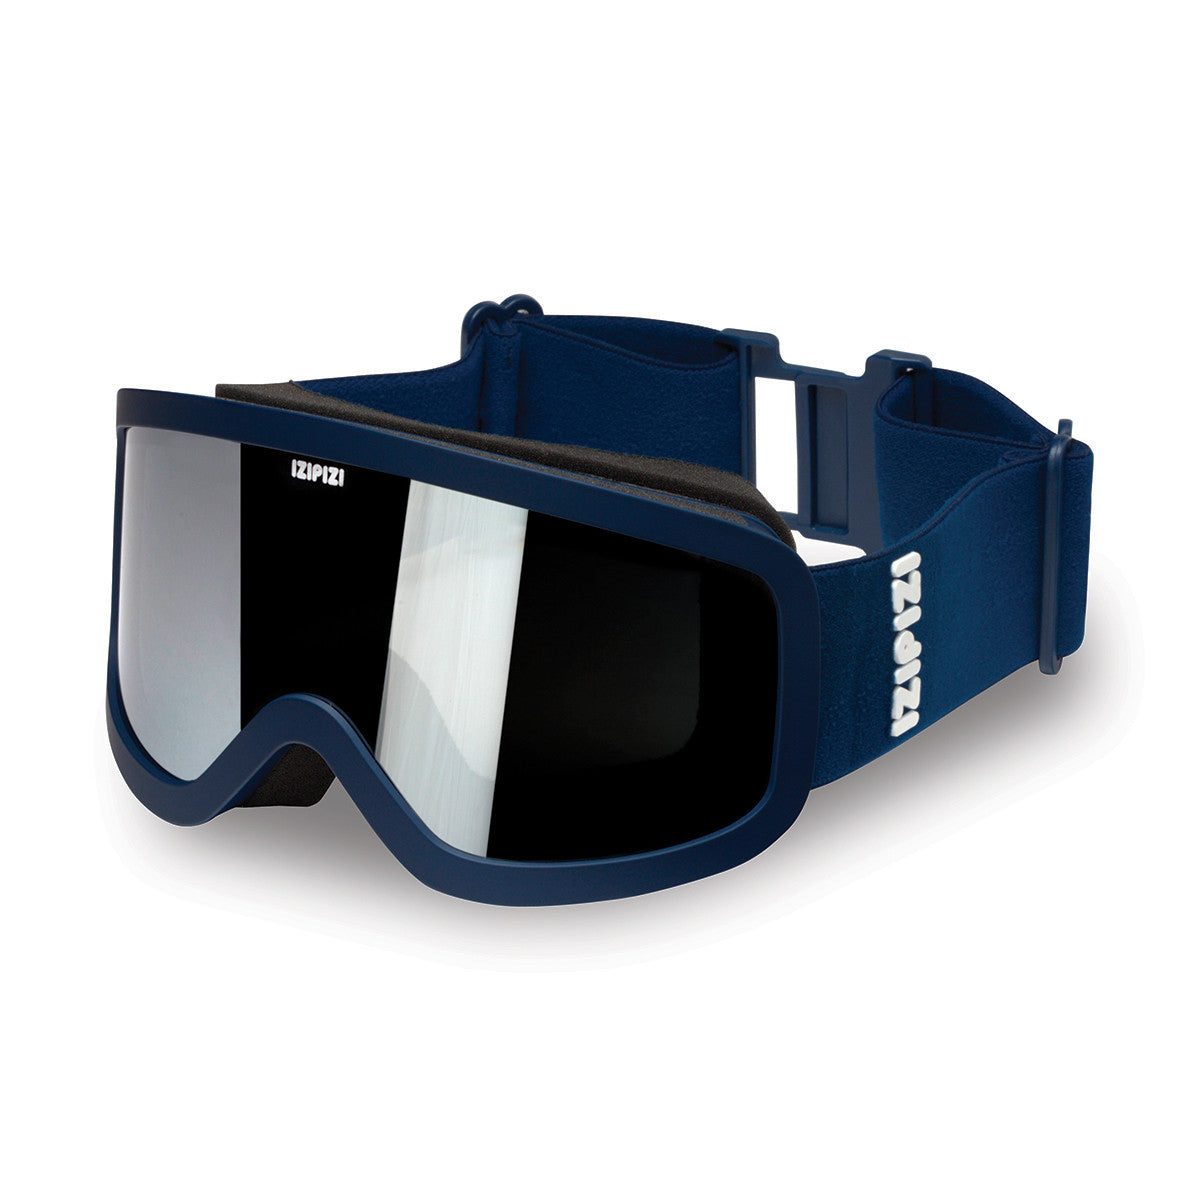 SKI SNOWBOARD GOGGLES / LARGE / NAVY BLUE